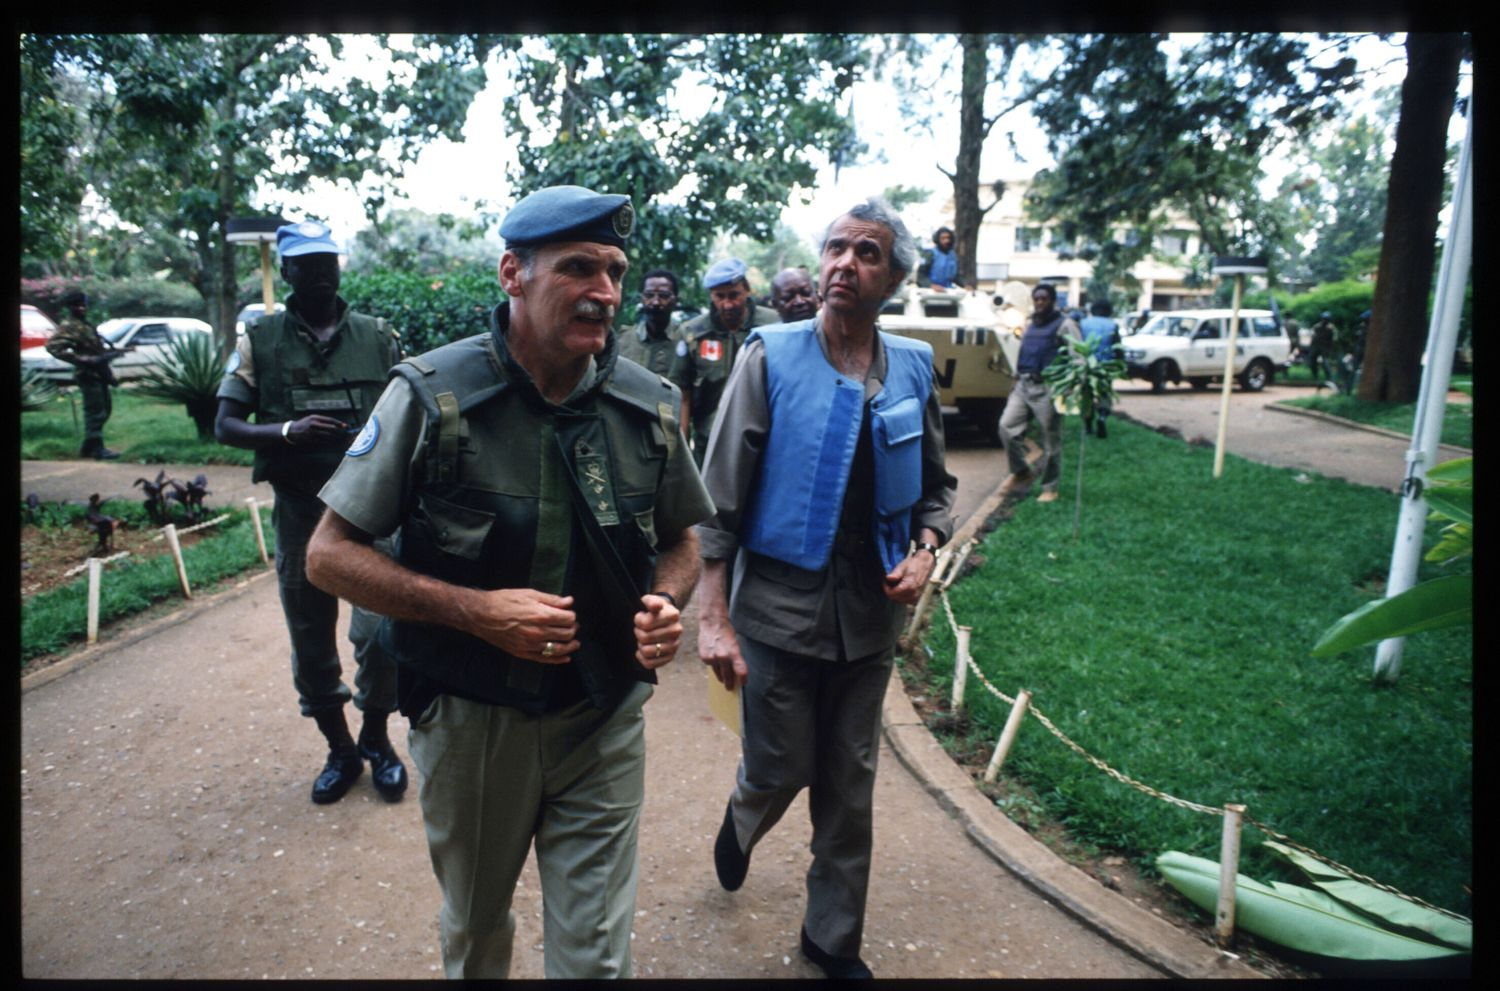 189913 16: Rwandan force commander Romeo Dallaire (left) walks with UN envoy Igbal Riza (right) May 26, 1994 in Kigali, Rwanda. A civil war erupts leading to the Rwandan slaughter of an estimated 800,000 Tutsis and Twas. (Photo by Scott Peterson/Liaison)